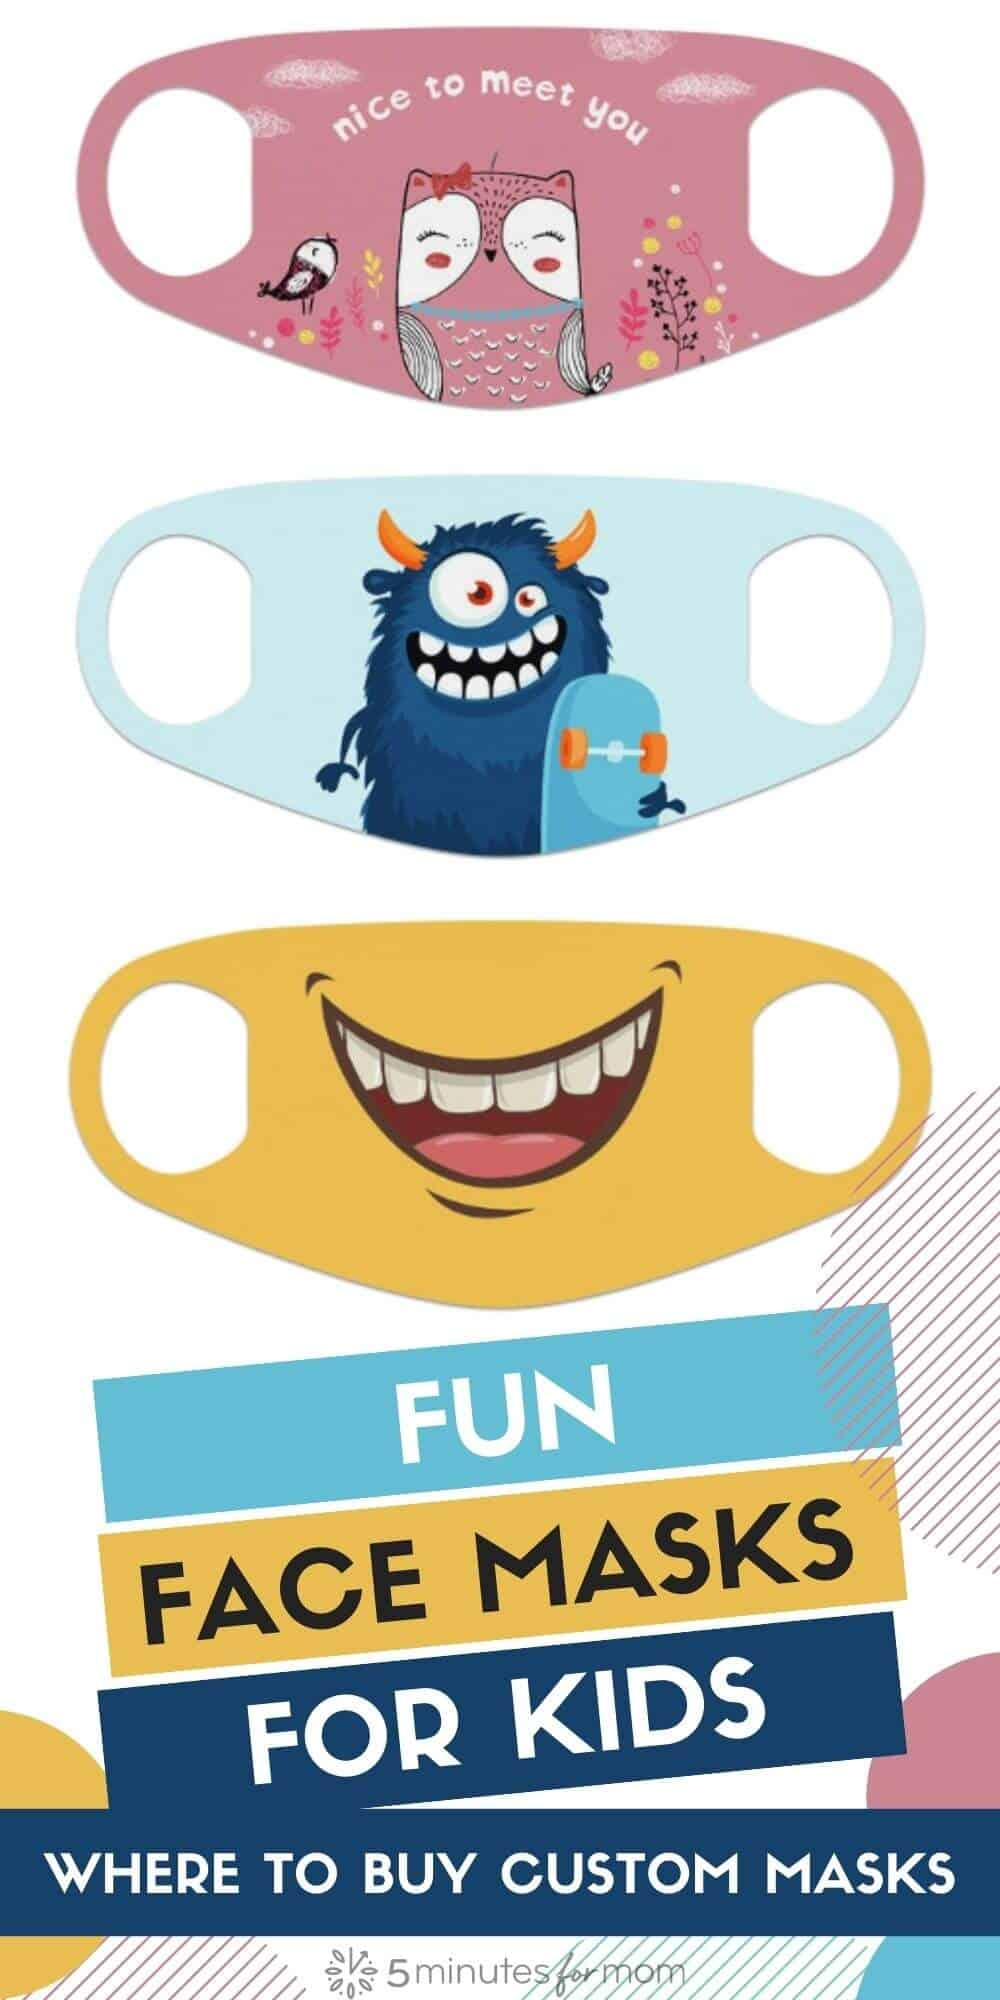 How to Create Custom Fun Face Masks for Kids